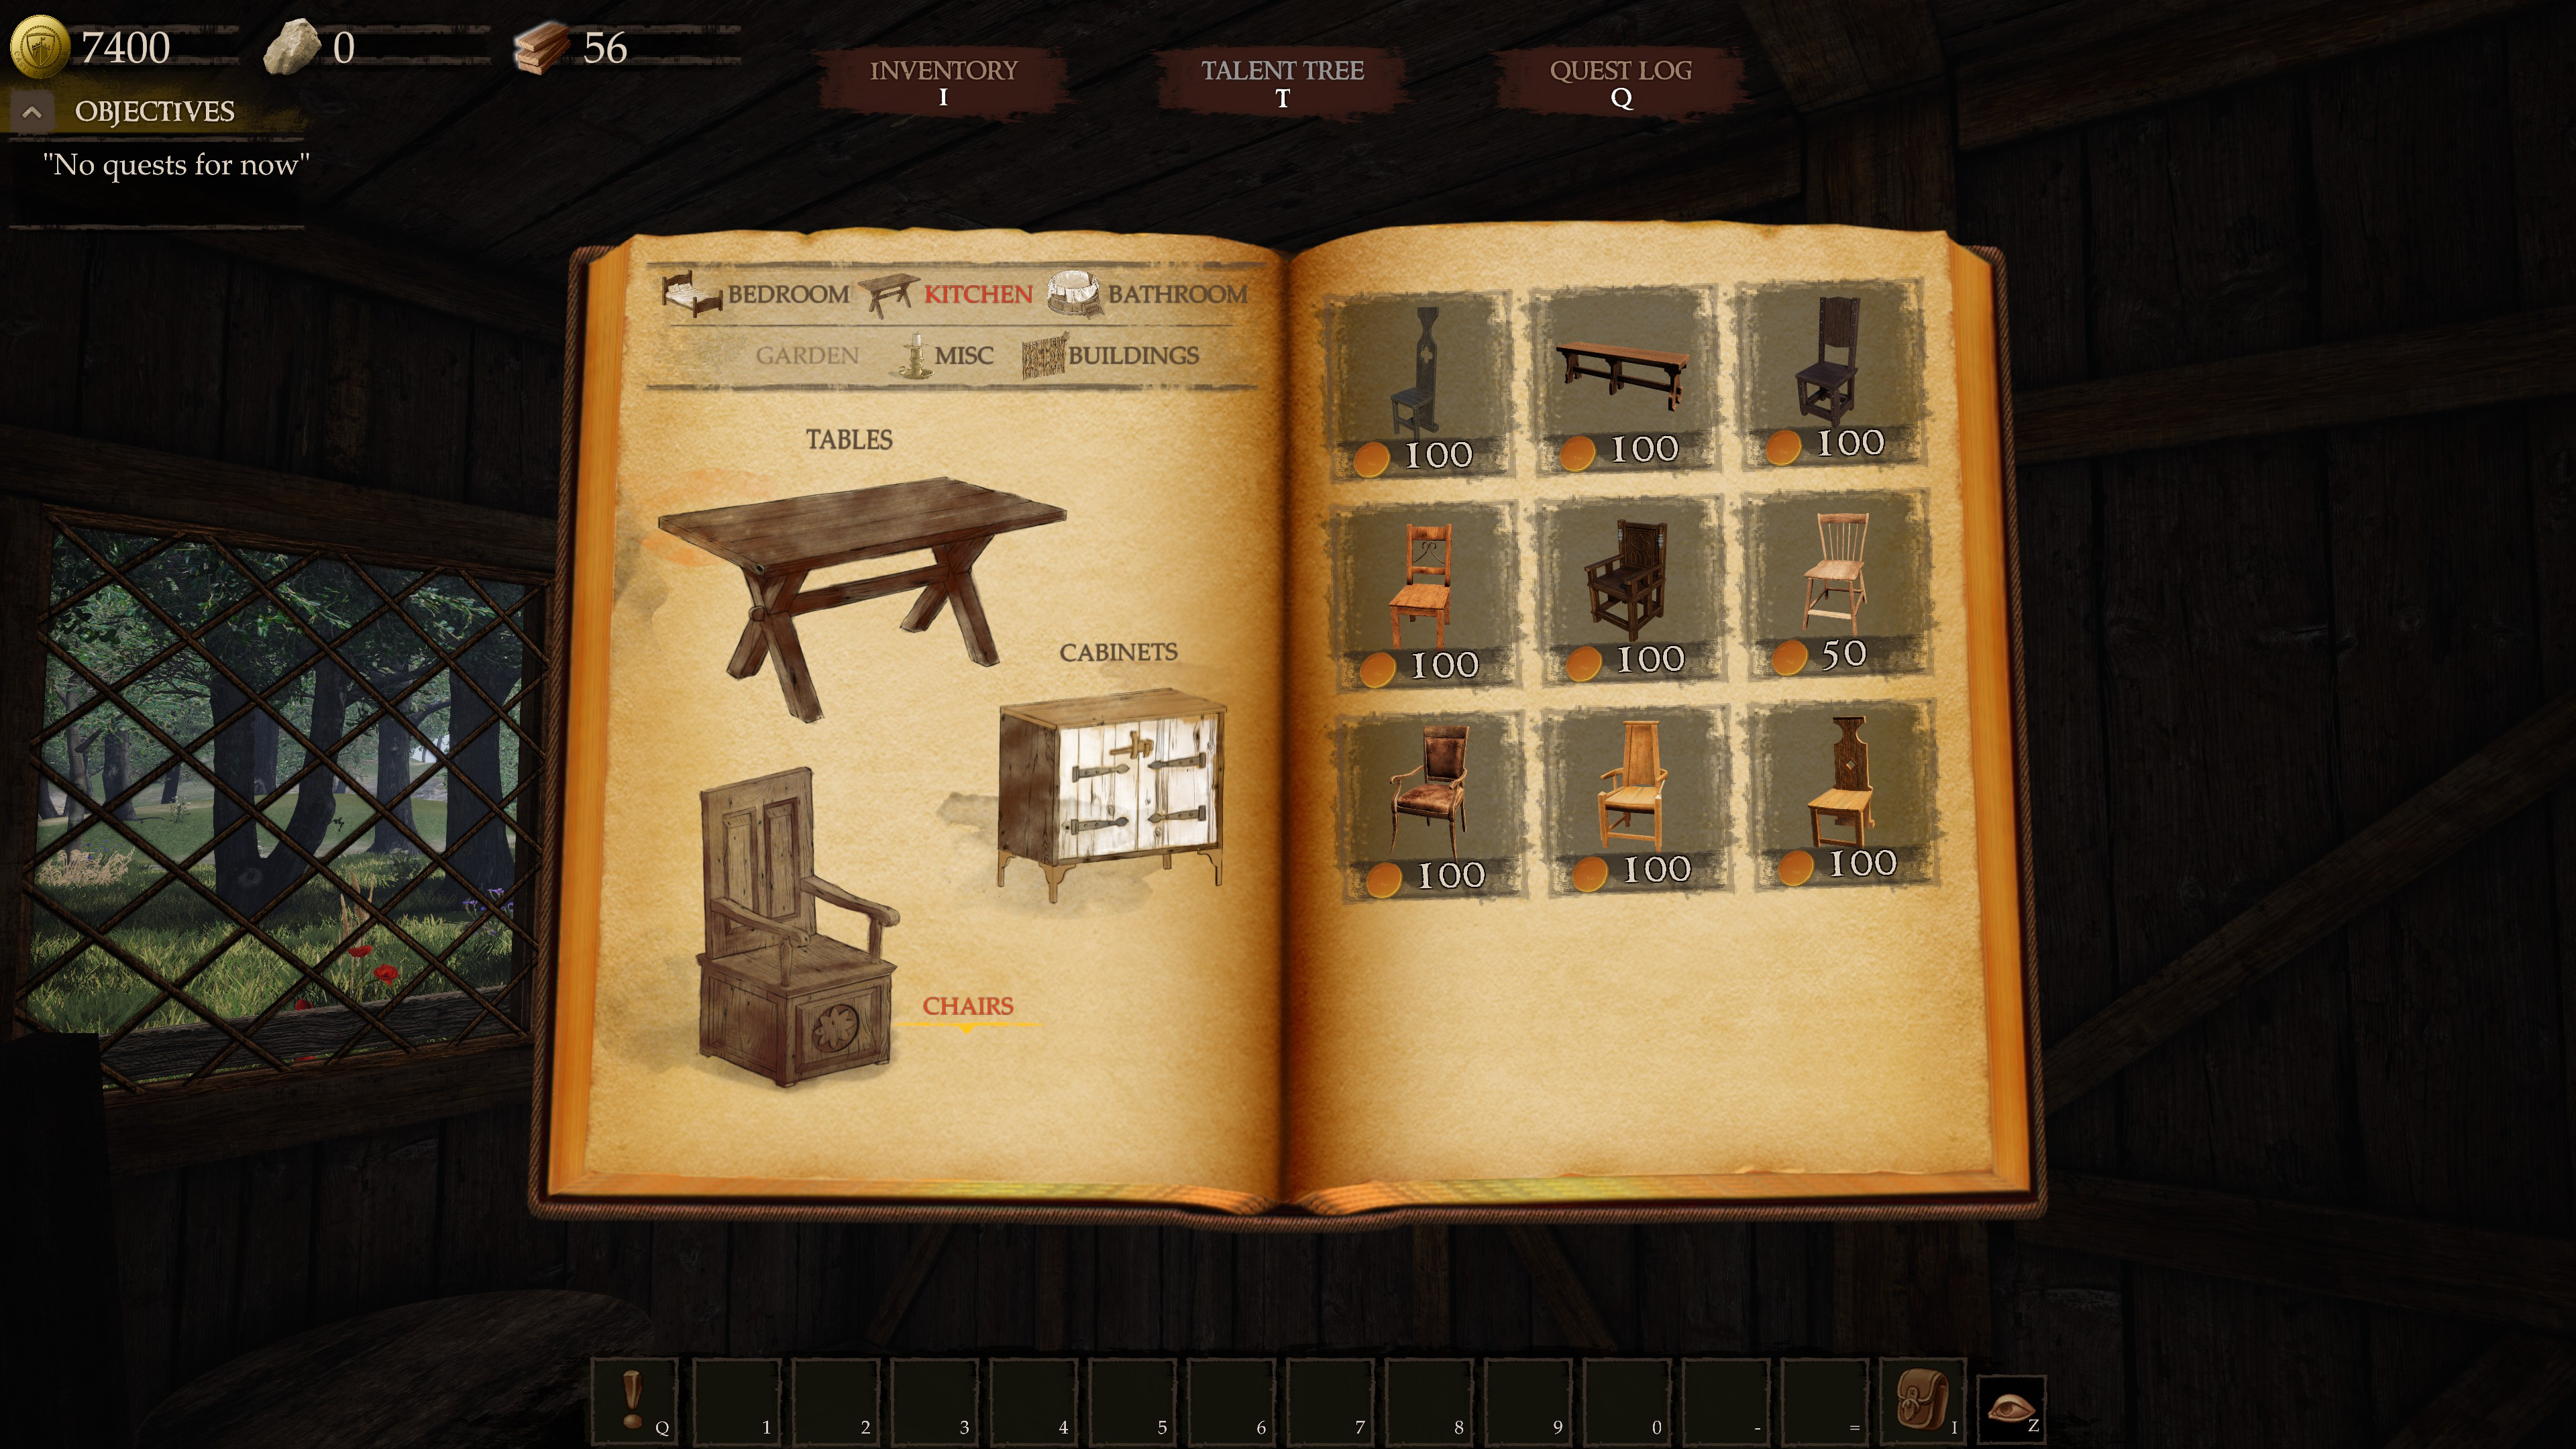 Castle Flipper. Catalog of furniture open to the chairs section. 9 options are available.